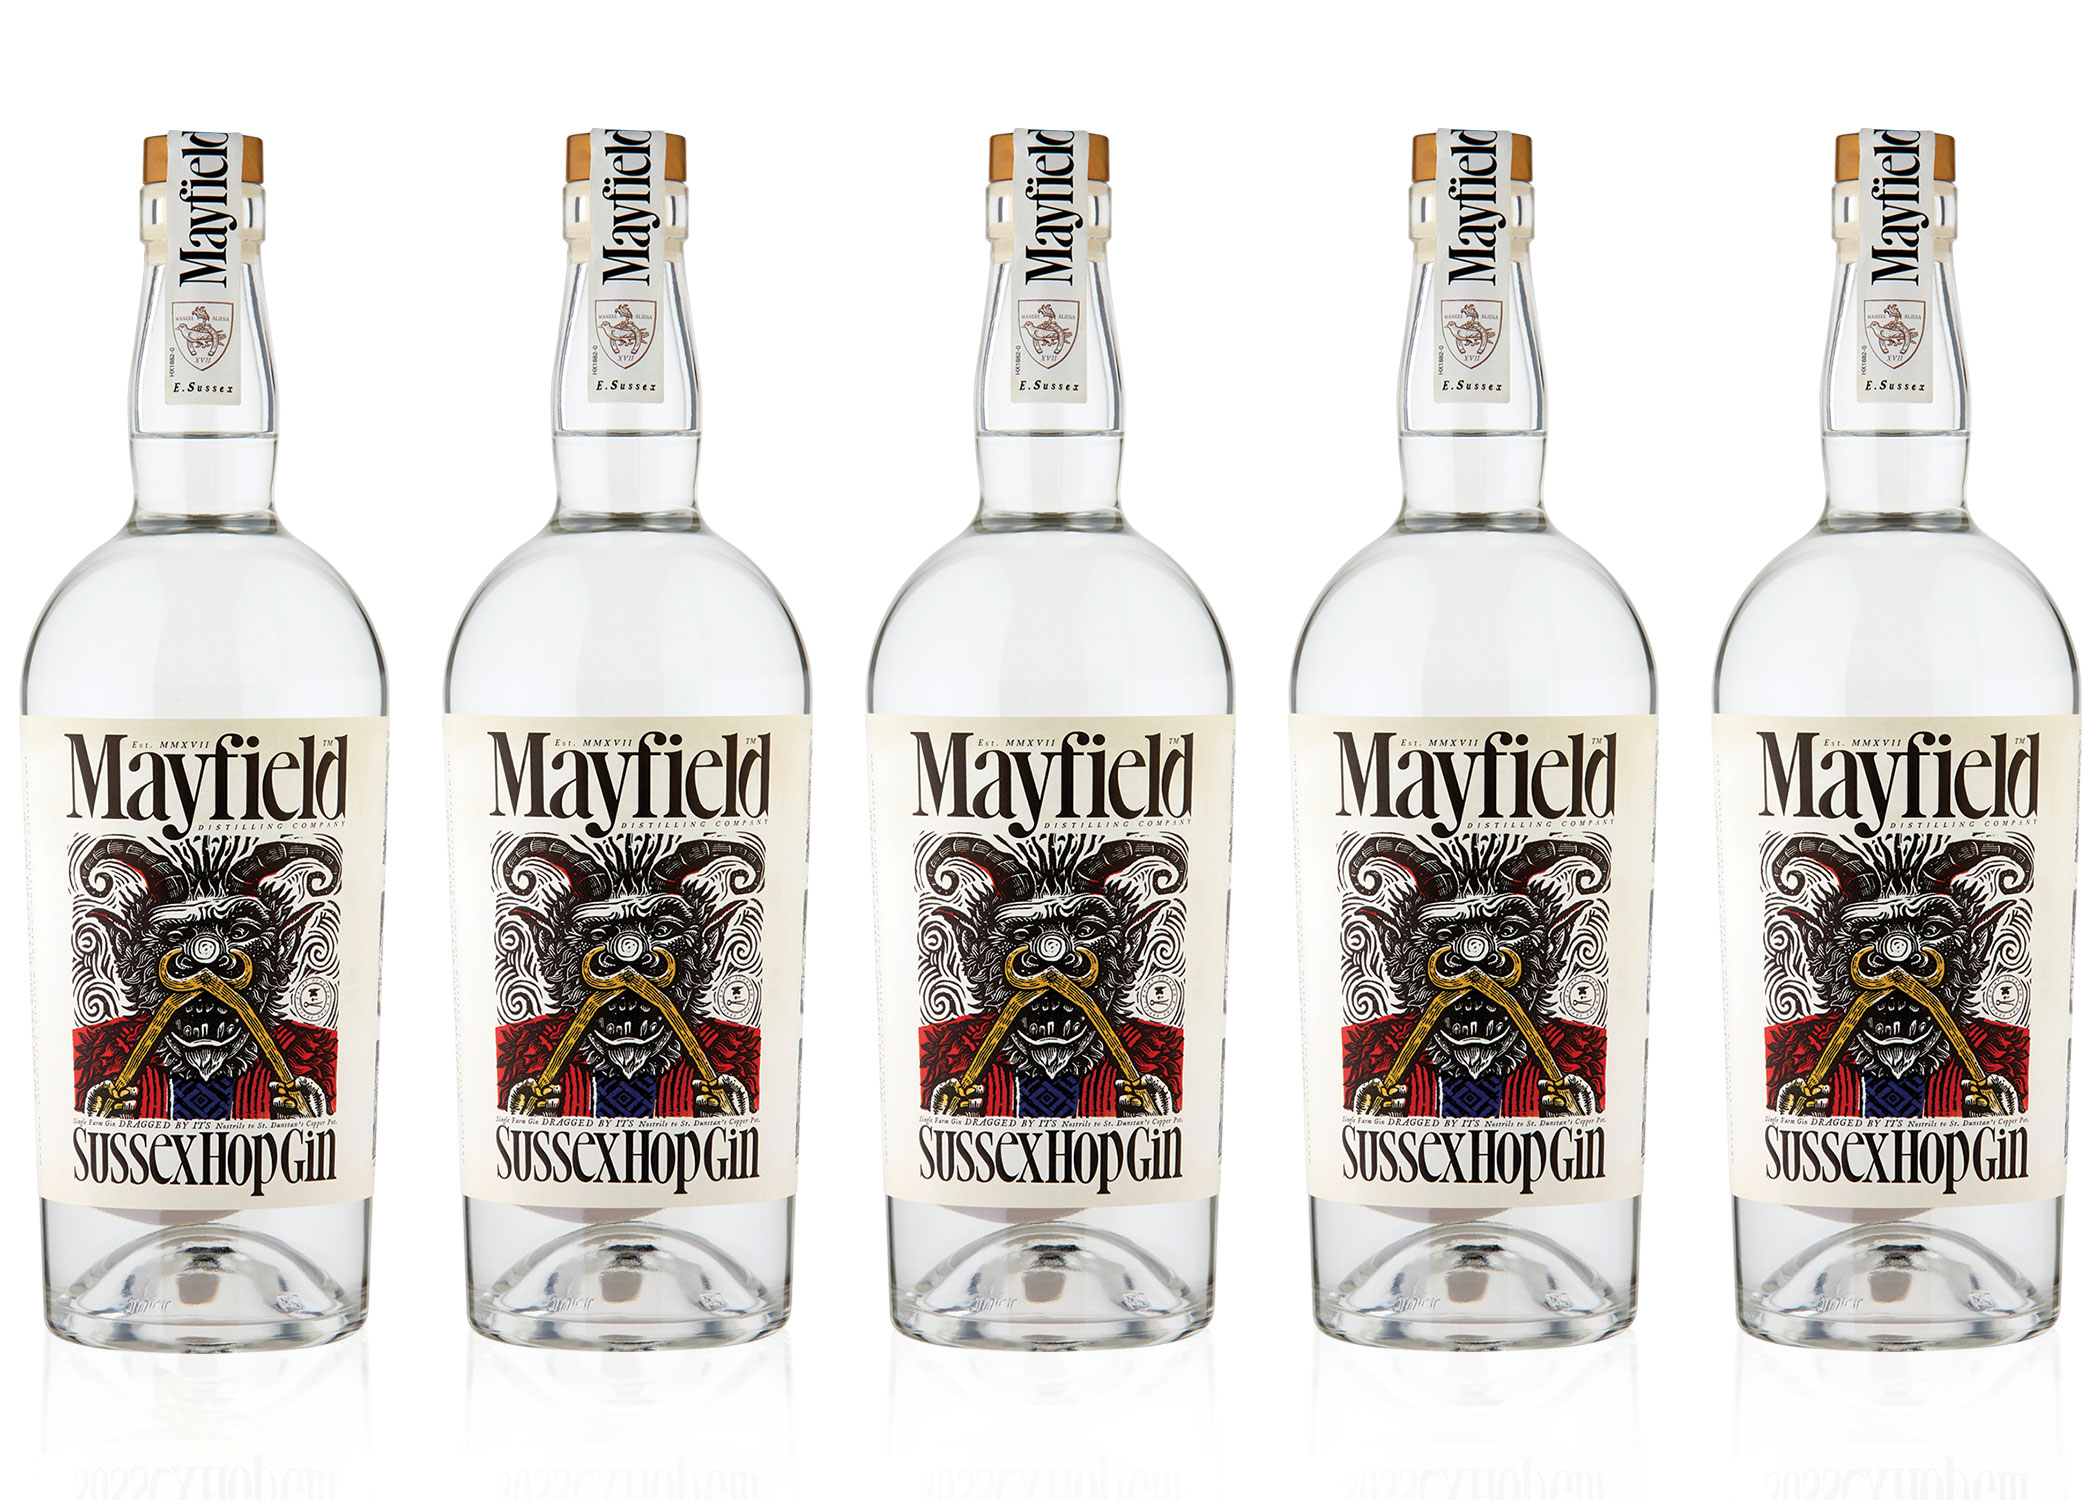 MAYFIELD DISTILLING COmpany - Discover the diabolically delectable gin range from Mayfield Distilling Company: Mayfield Sussex Hop Gin, Mayfield Rhubarb & Ginger Gin Liqueur and Mayfield Elderflower & Peach Gin Liqueur.